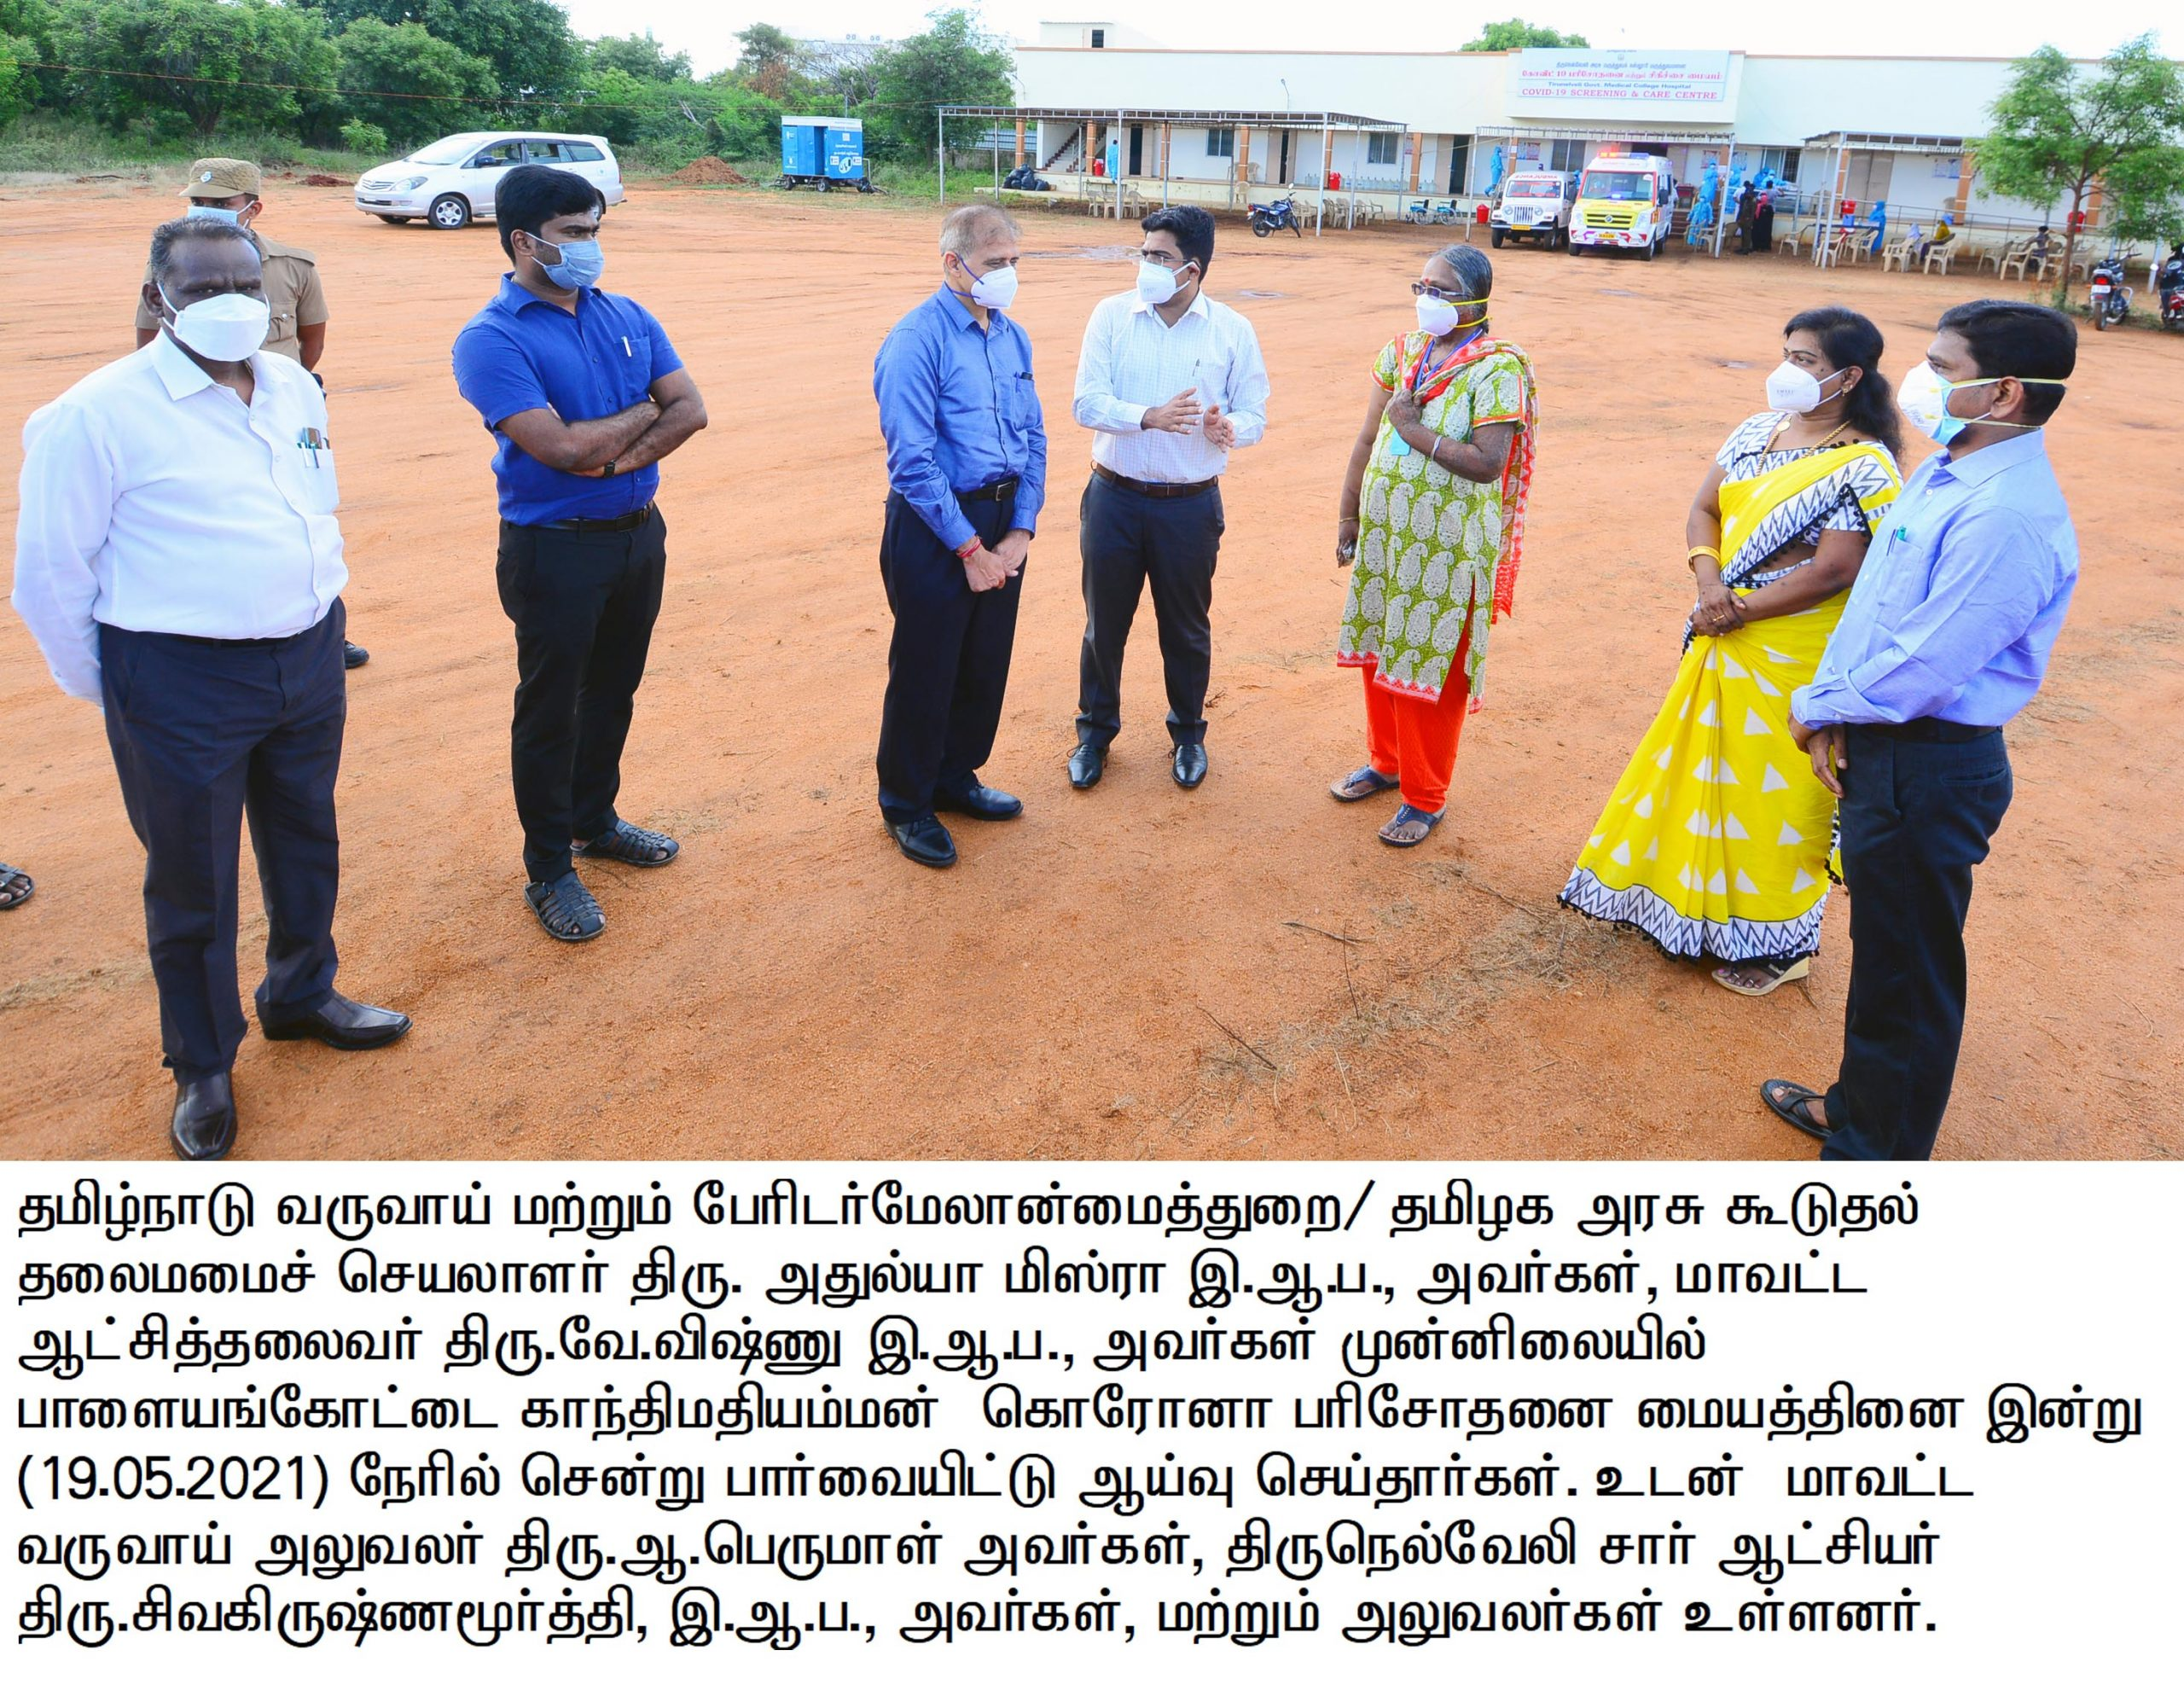 Additional Chief Secretary of Revenue inspected the Corona Testing Center and Care Centre located at Gandhimathi School 1